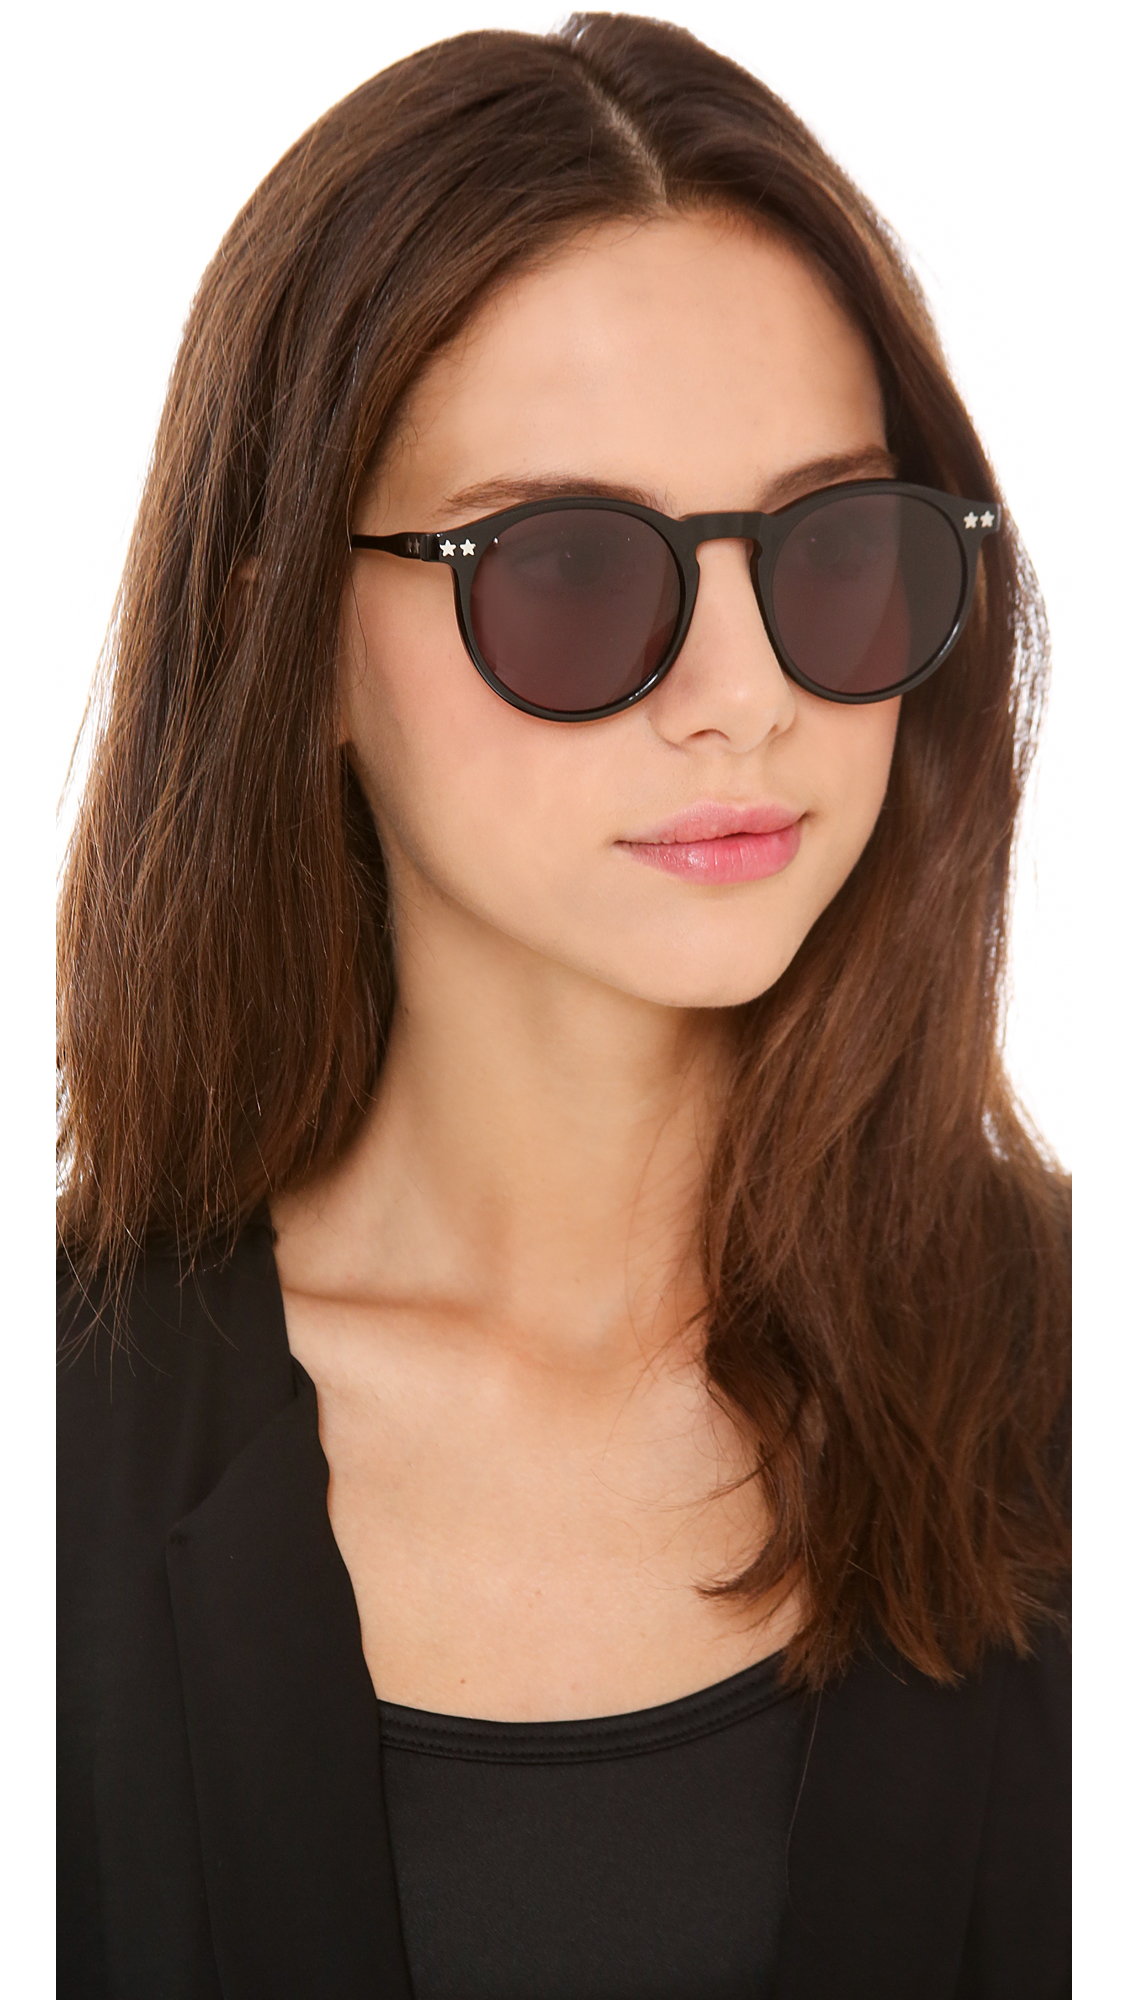 7ad98d6f9a Lyst - Wildfox Steff Sunglasses in Black